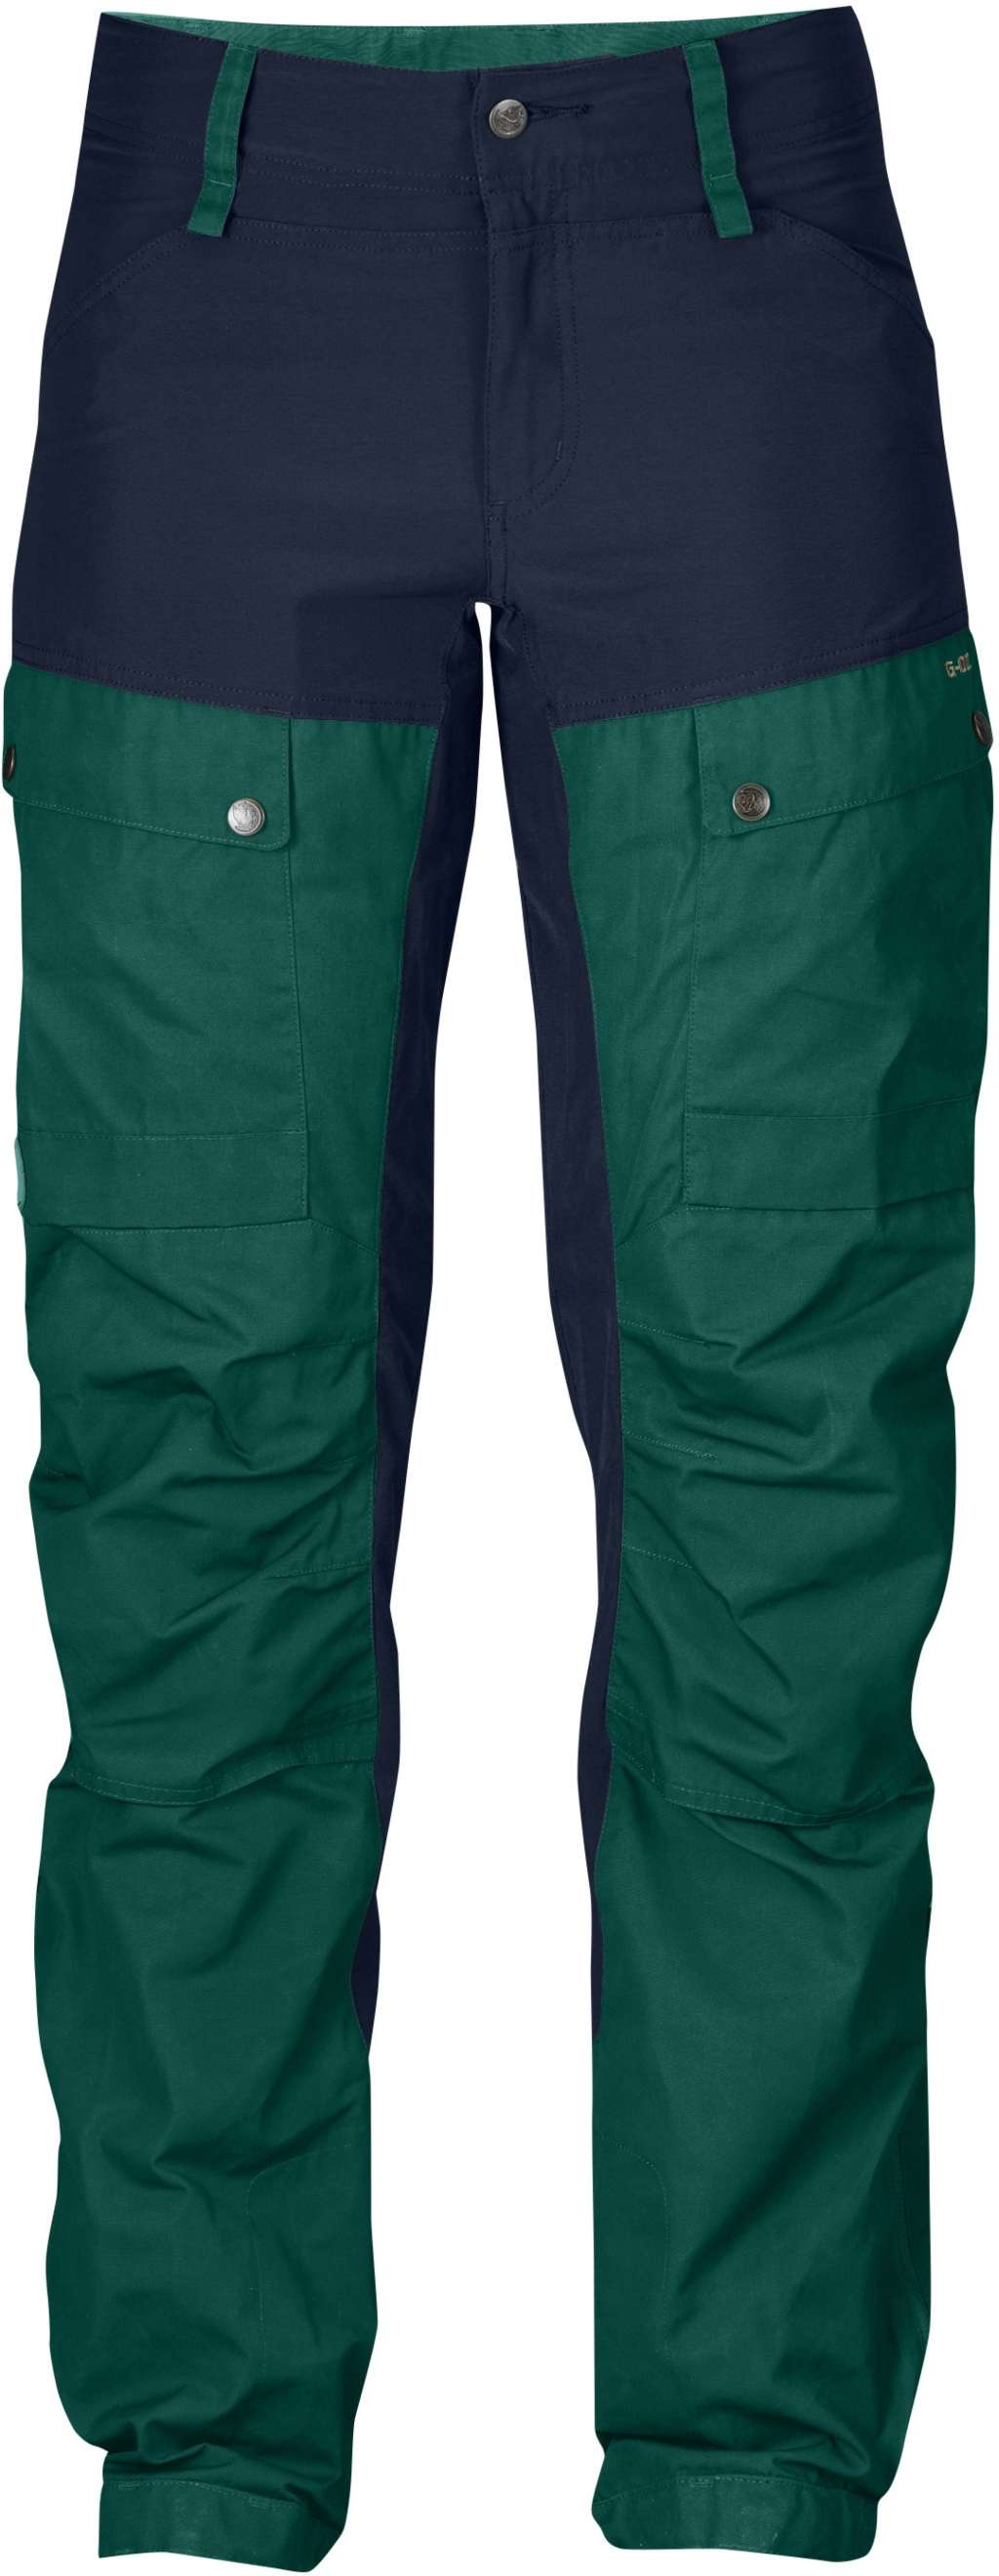 FjallRaven Keb Trousers W Short Copper Green-30